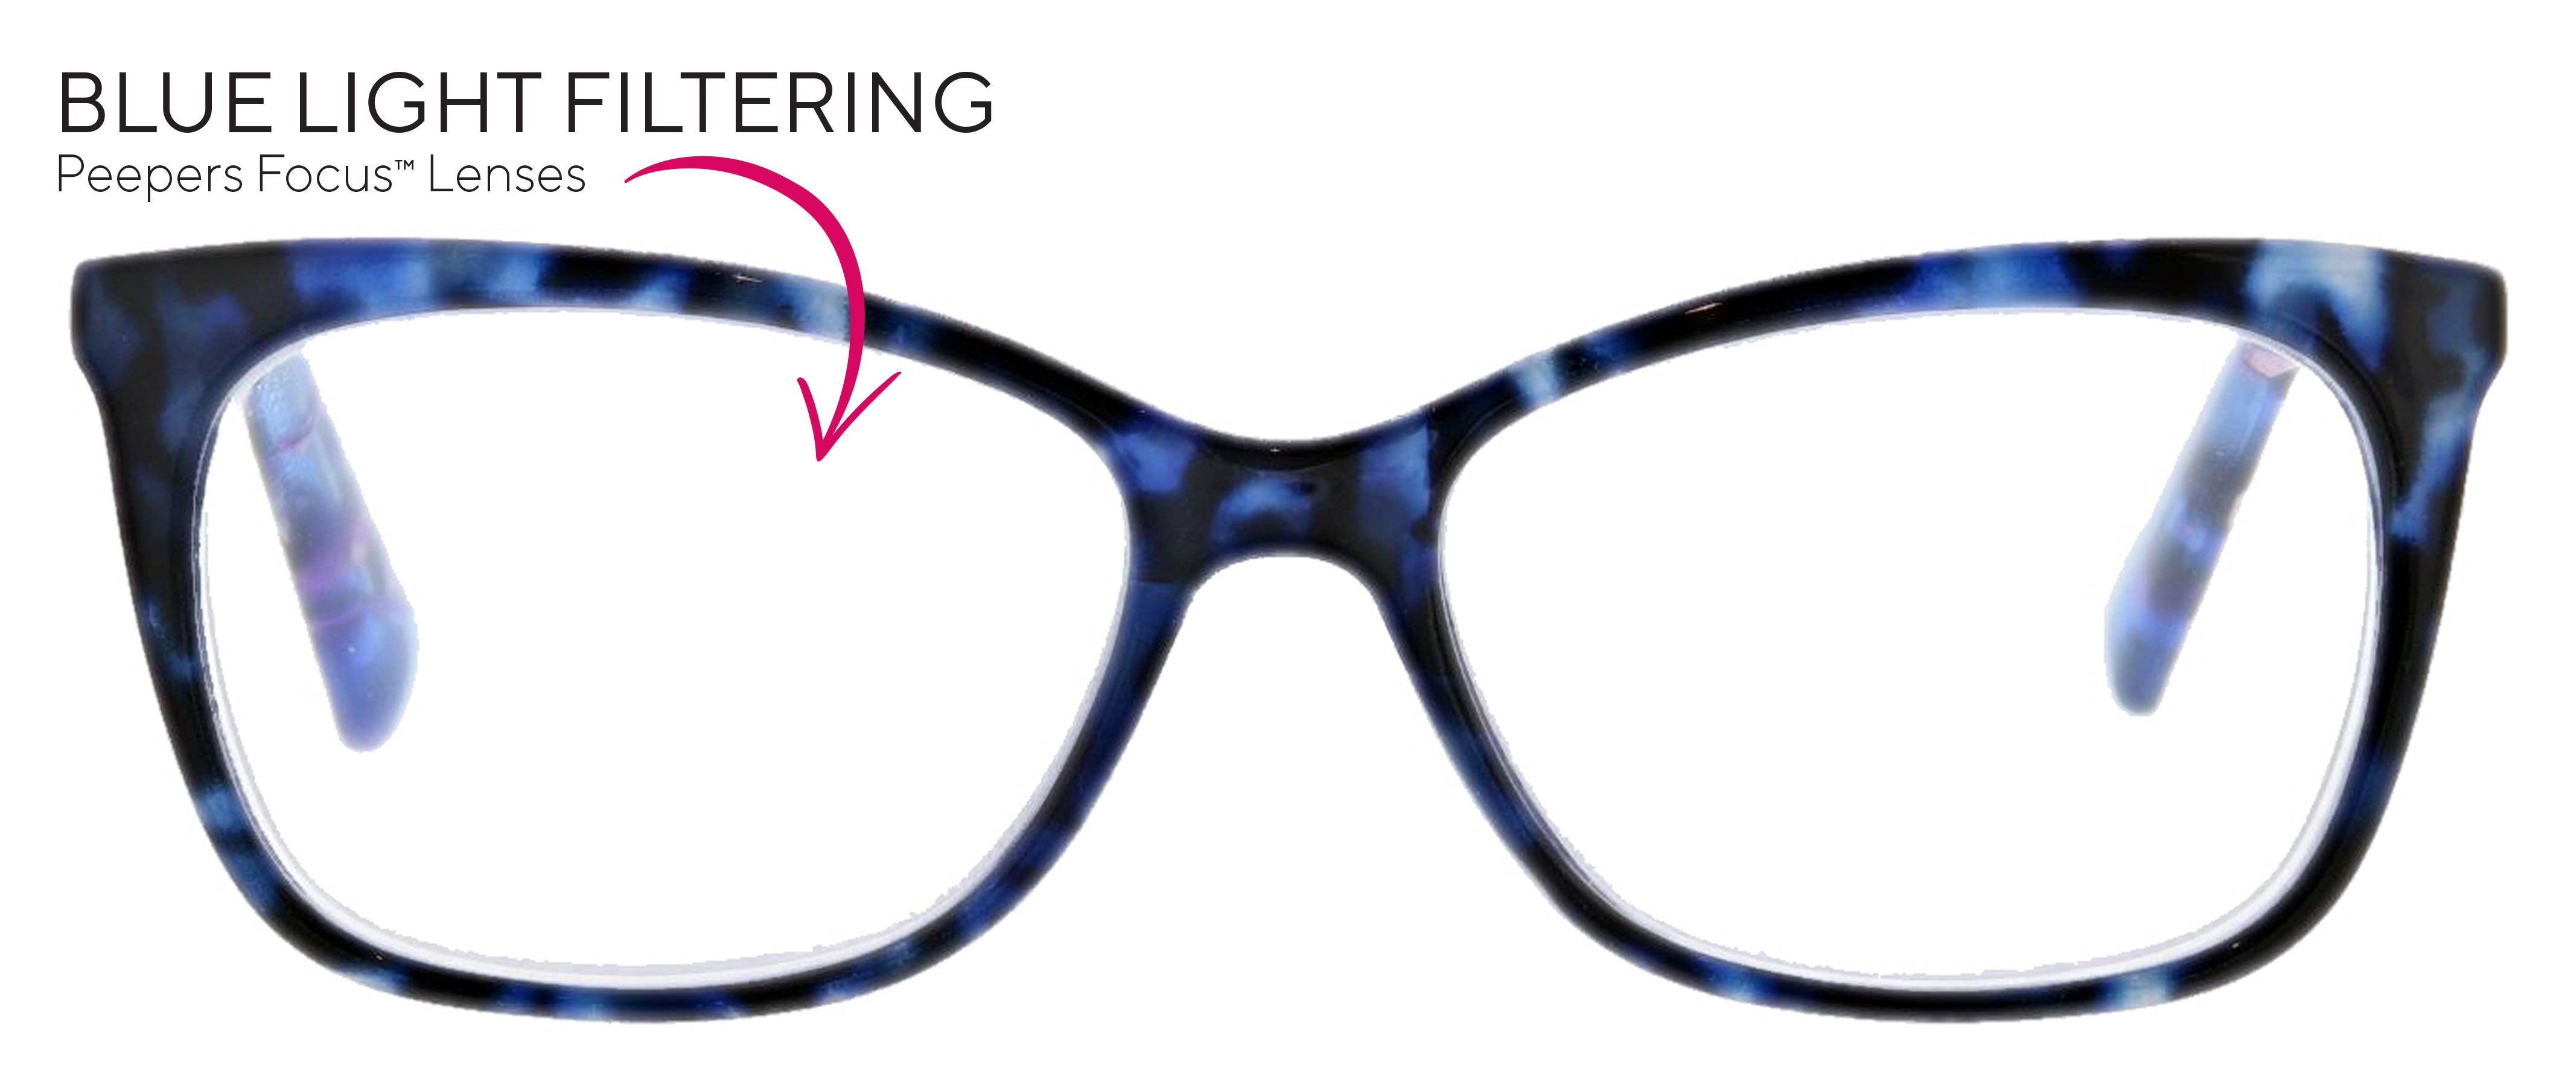 See The Beauty Blue Light Glasses By Peepers